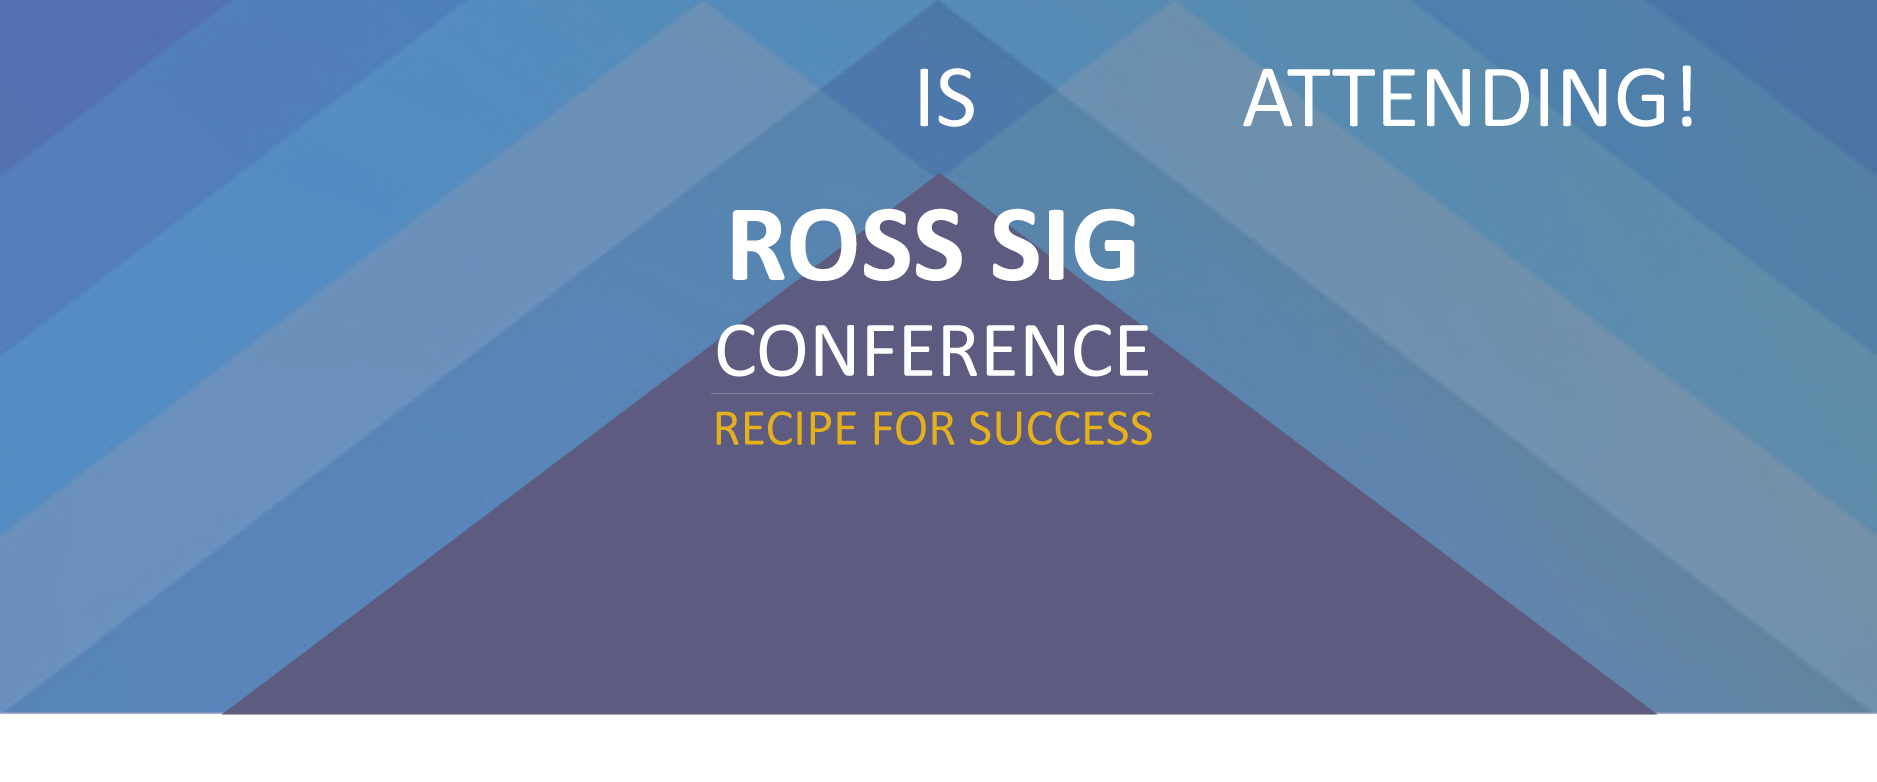 Ross-Sig-Conference-2